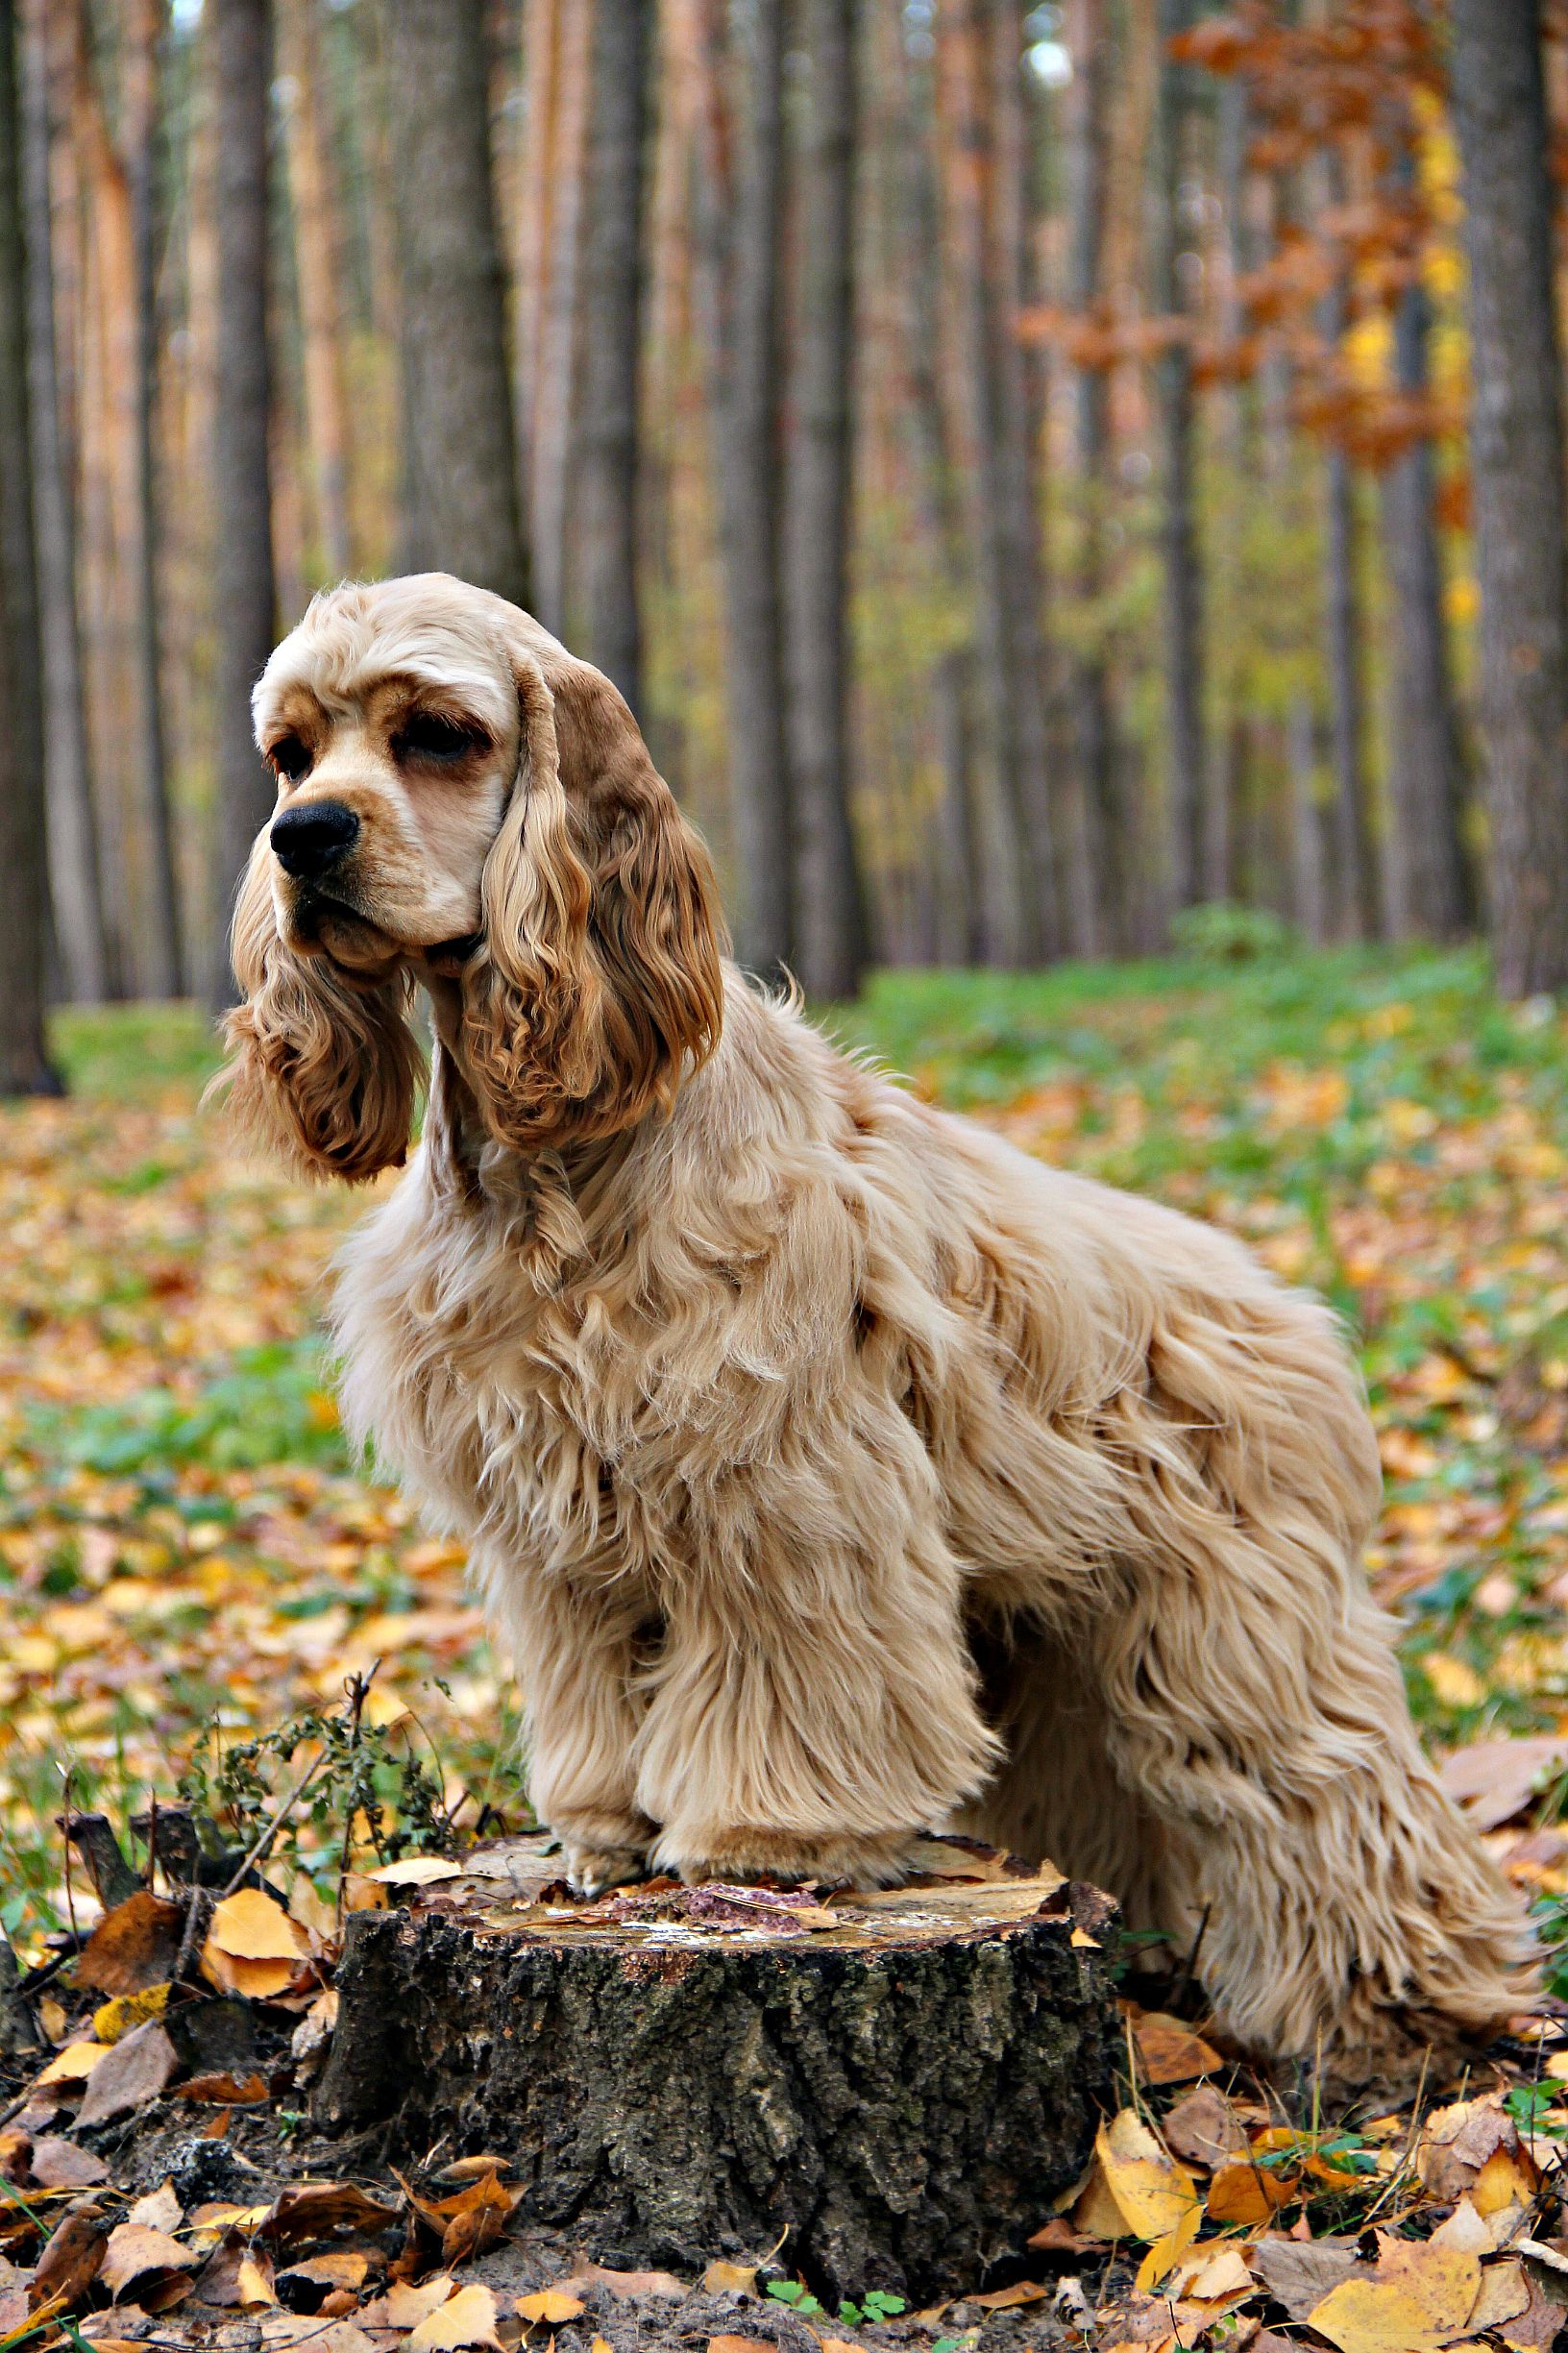 Enjoy The Autumn With An American Cocker Spaniel Puppy Cocker Spaniel Puppies American Cocker Spaniel Spaniel Puppies